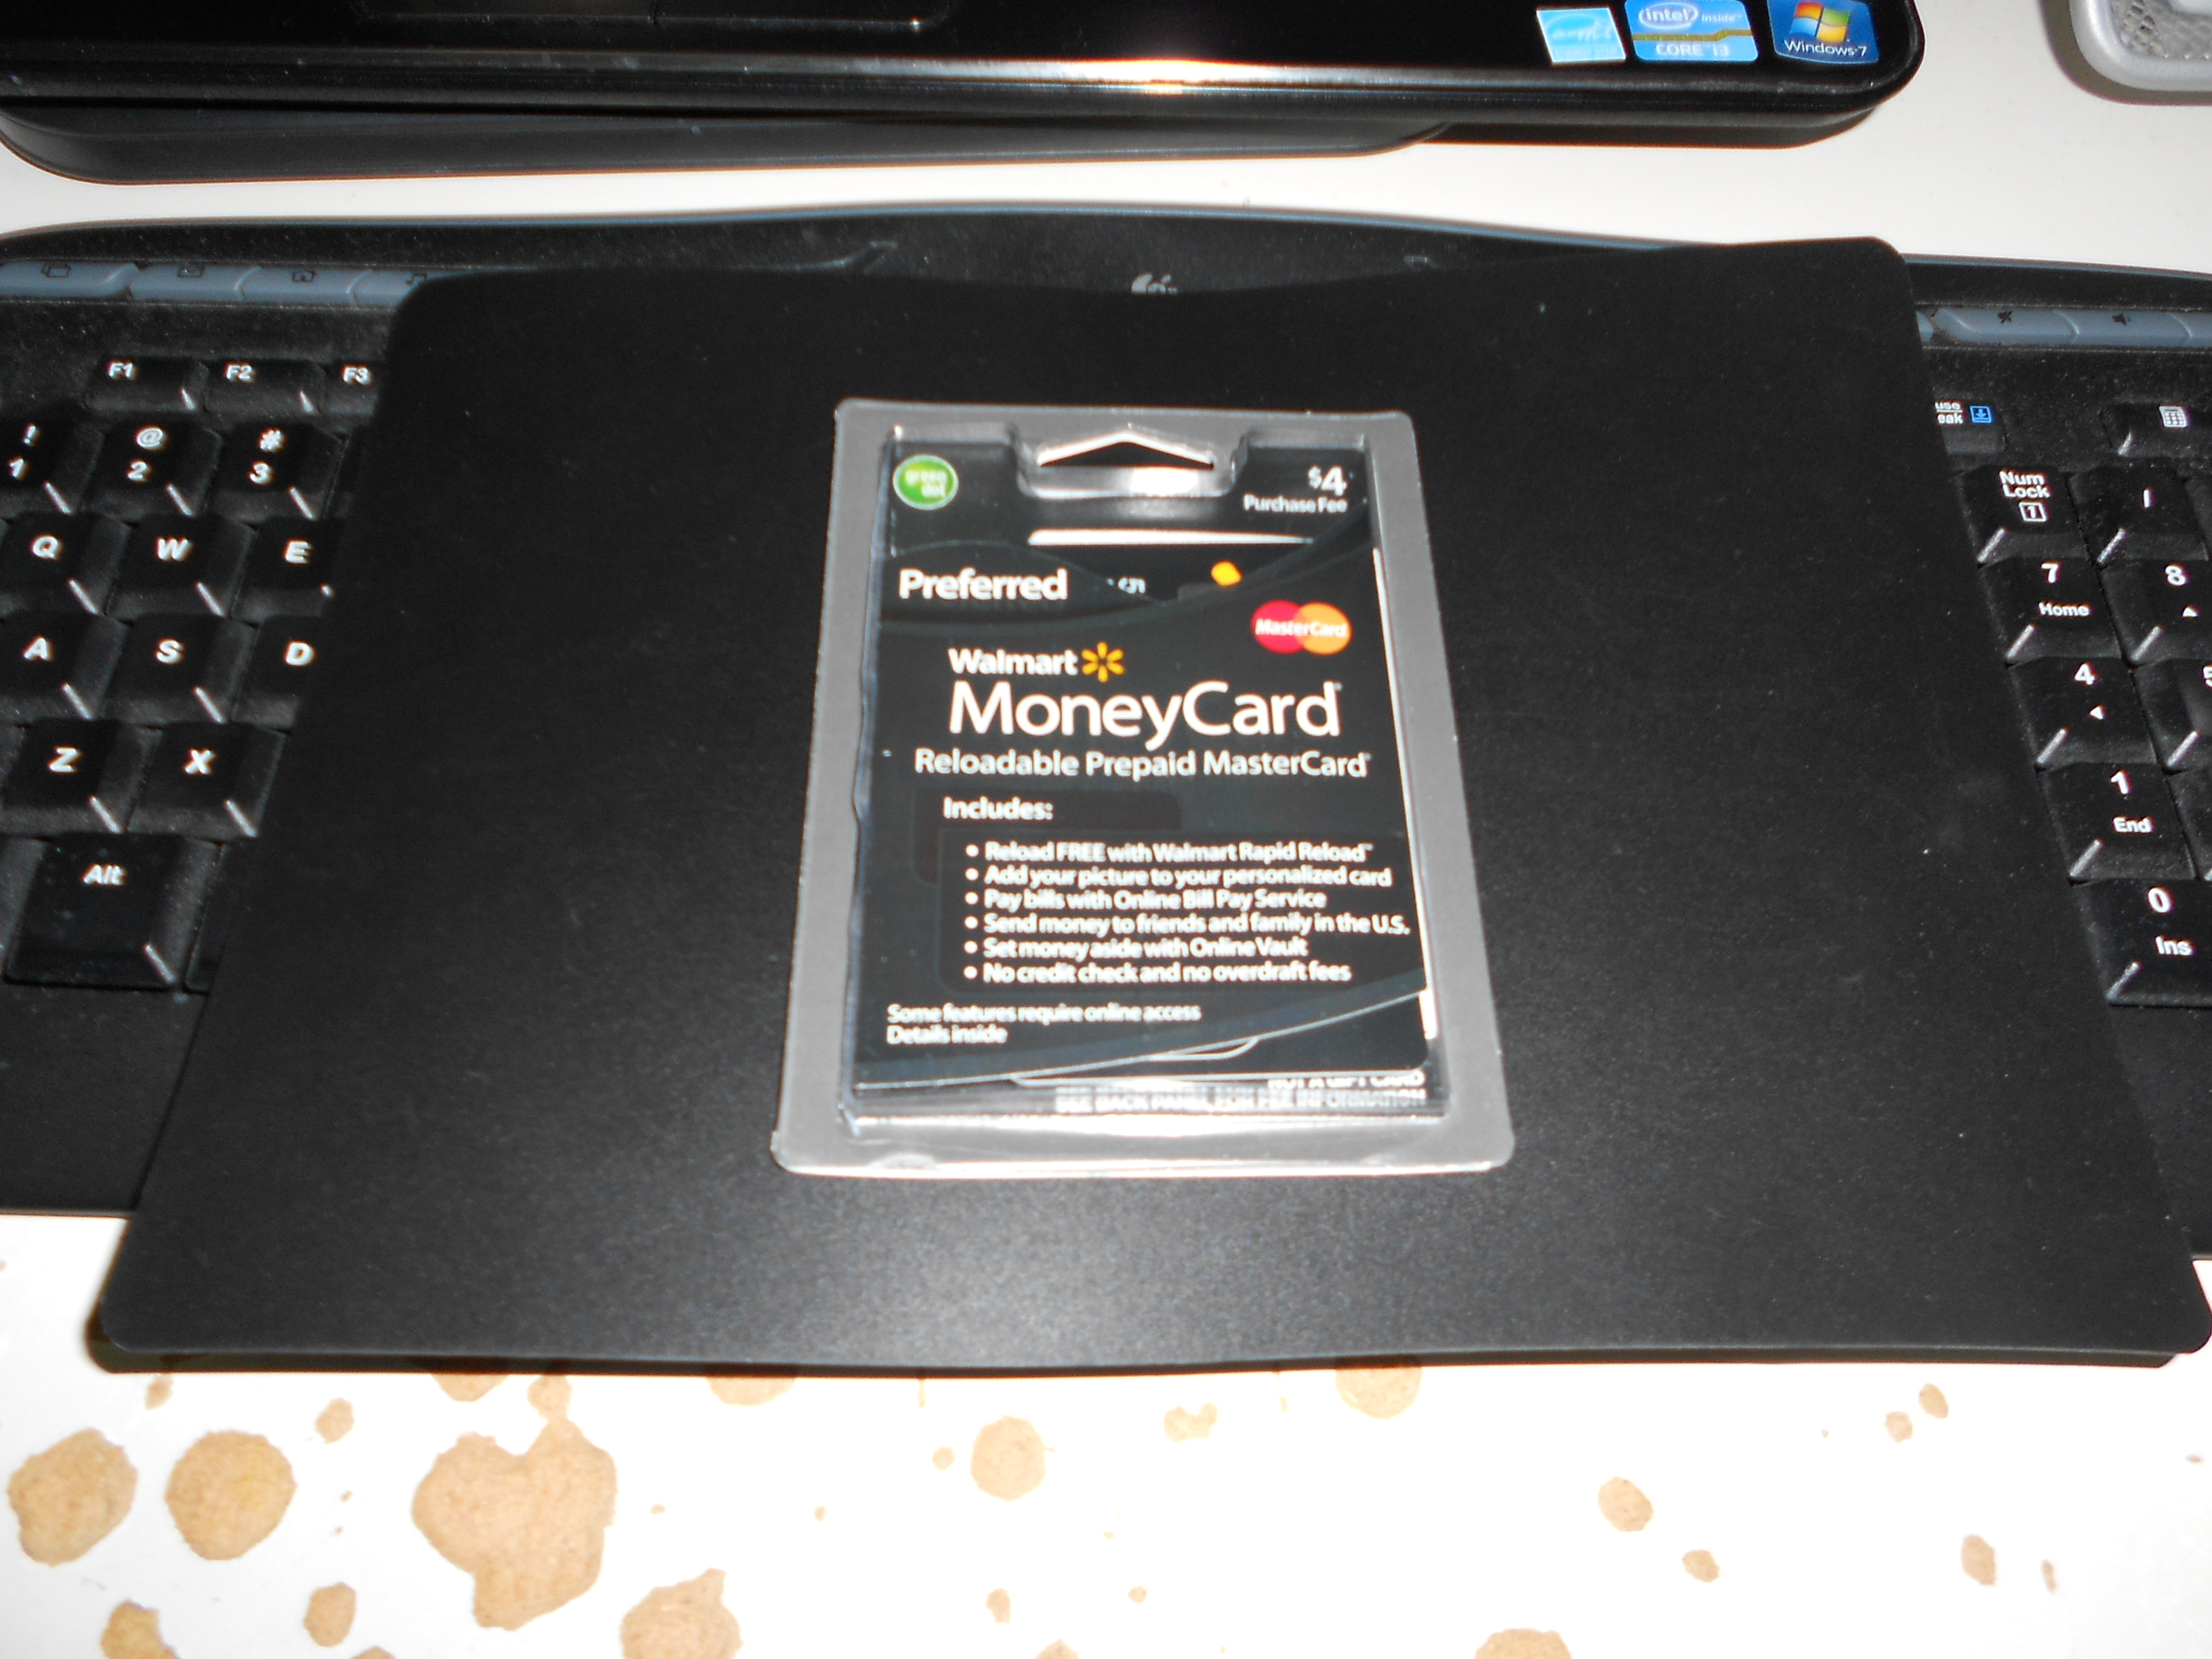 Walmart money card bank info / T mobile phone top up